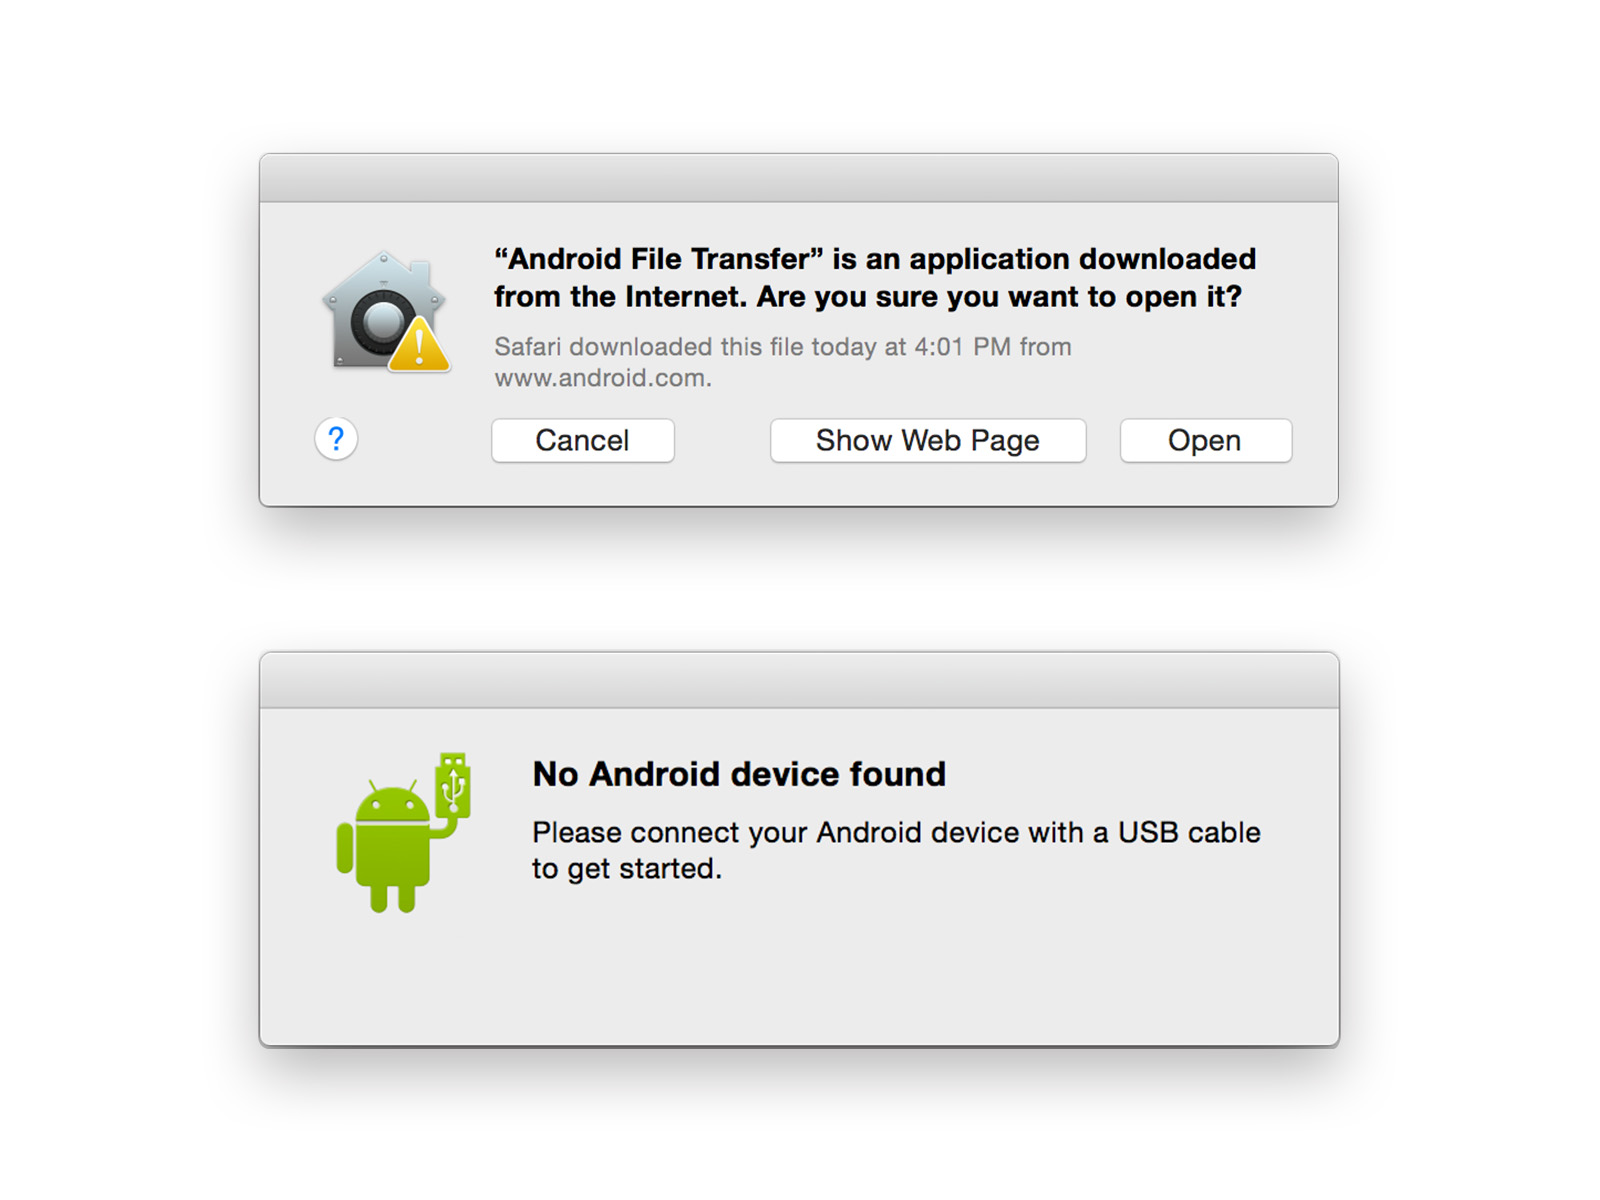 Android File Transfer 起動